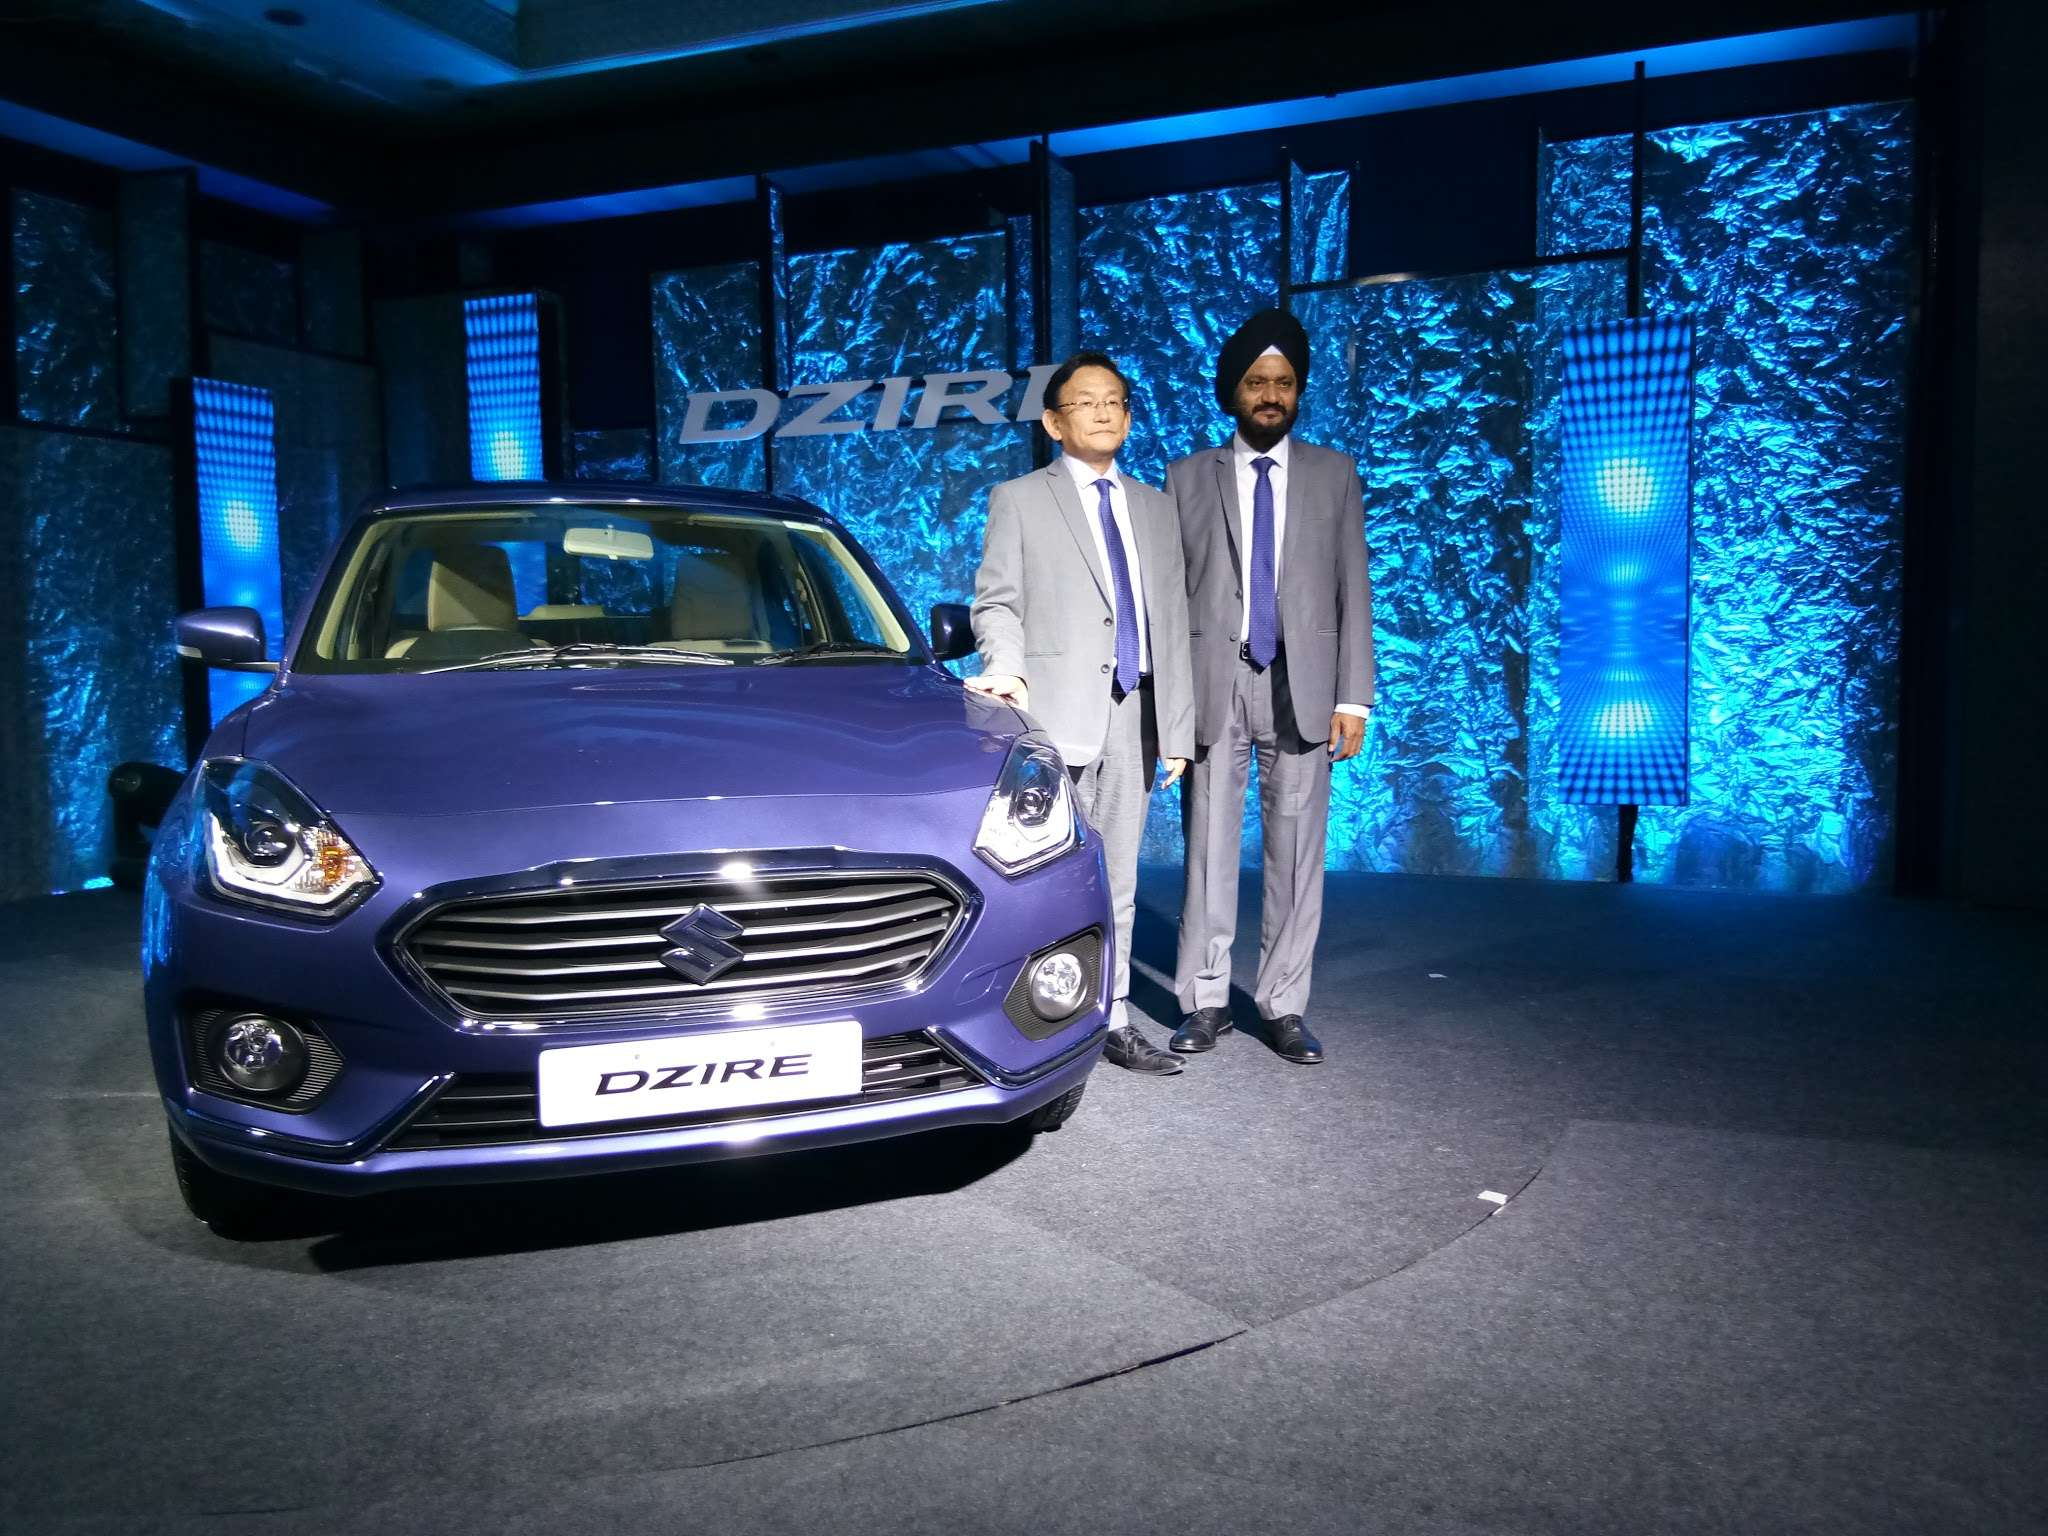 new car launches planned in indiaMaruti Suzuki Dzire 2017 Maruti Suzuki Dzire launched in India